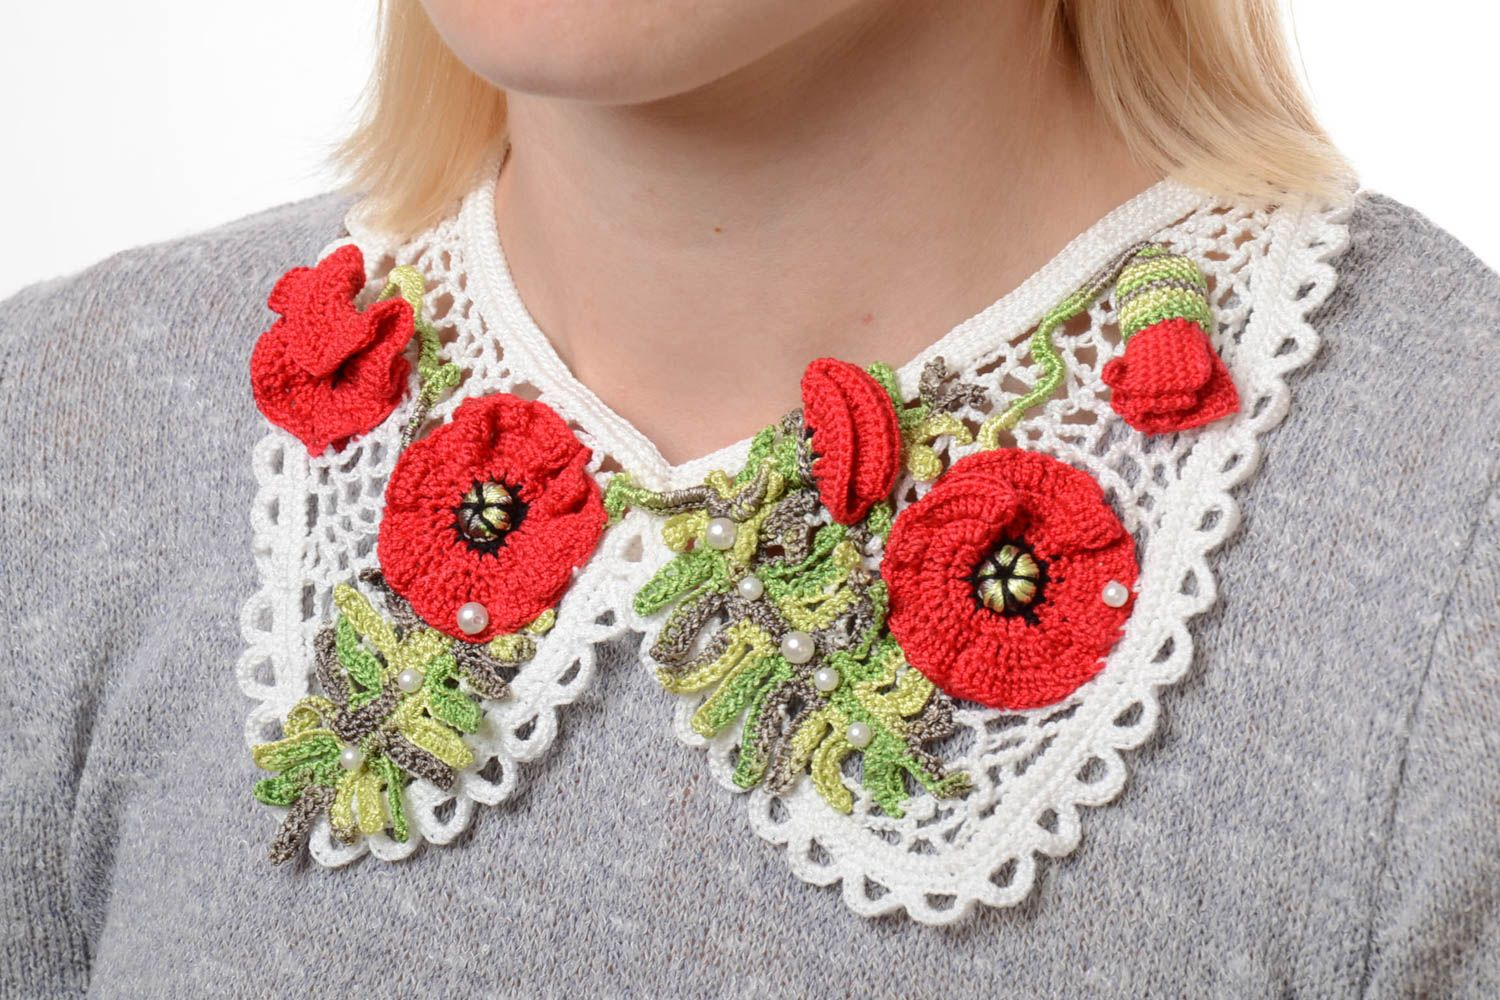 сollars Handmade collar necklace detachable collar fashion necklace designer jewelry  - MADEheart.com